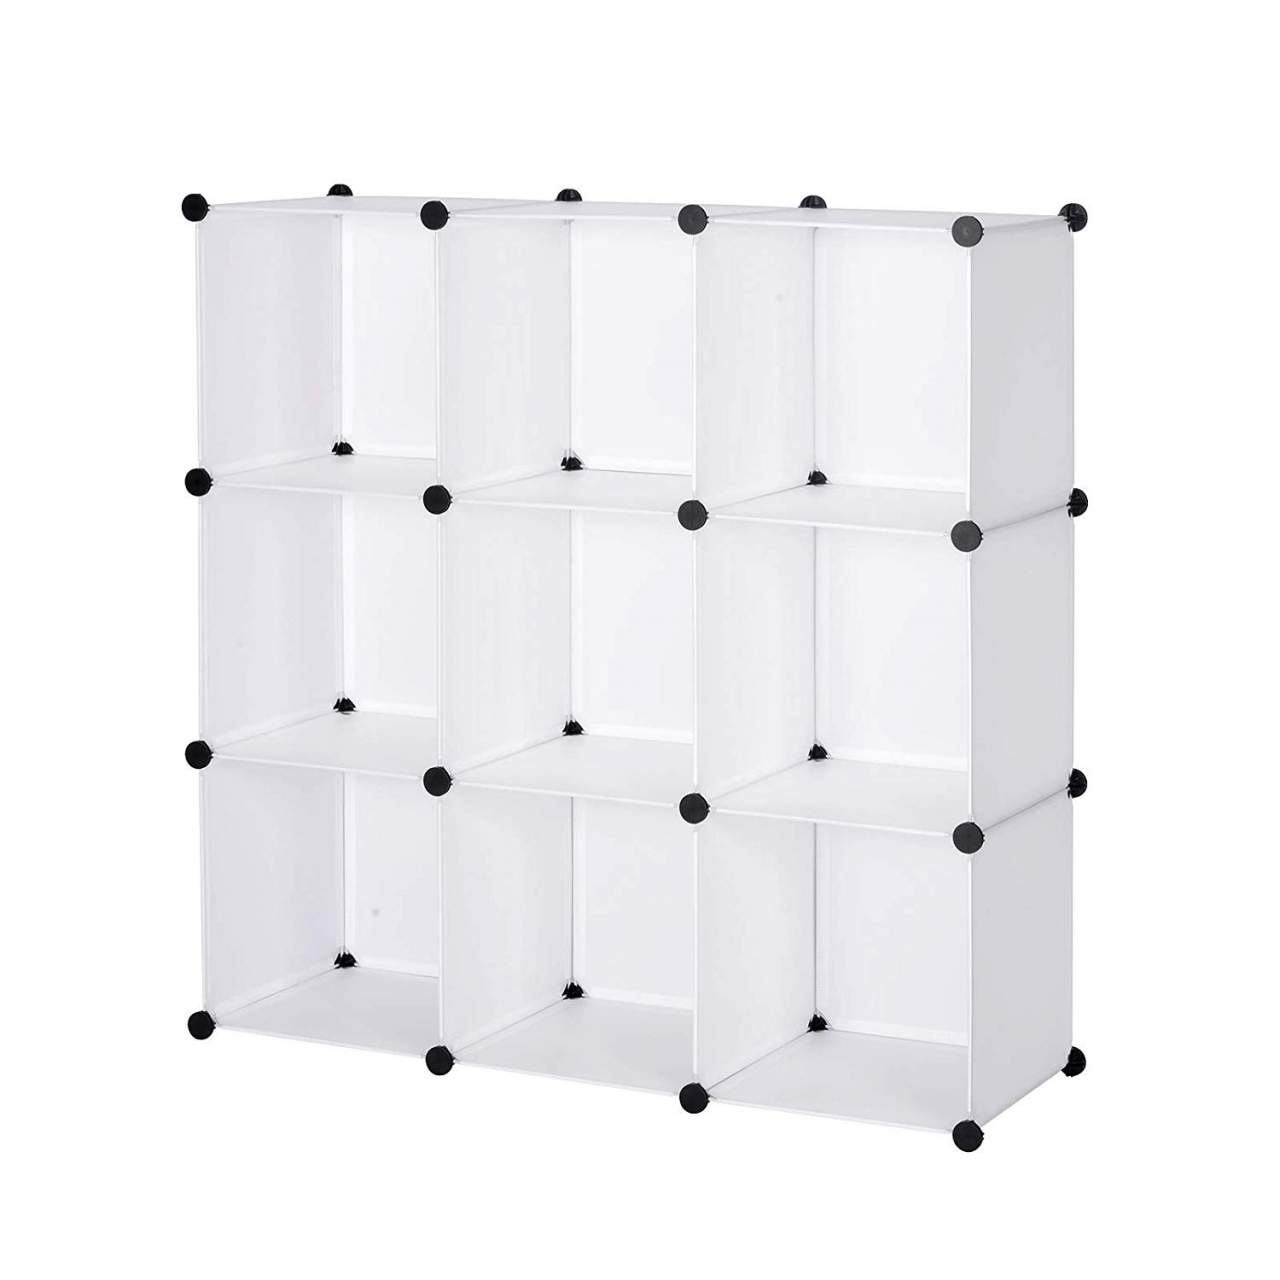 Wardrobe Without Door With Plastic Compartments Woltu Eu